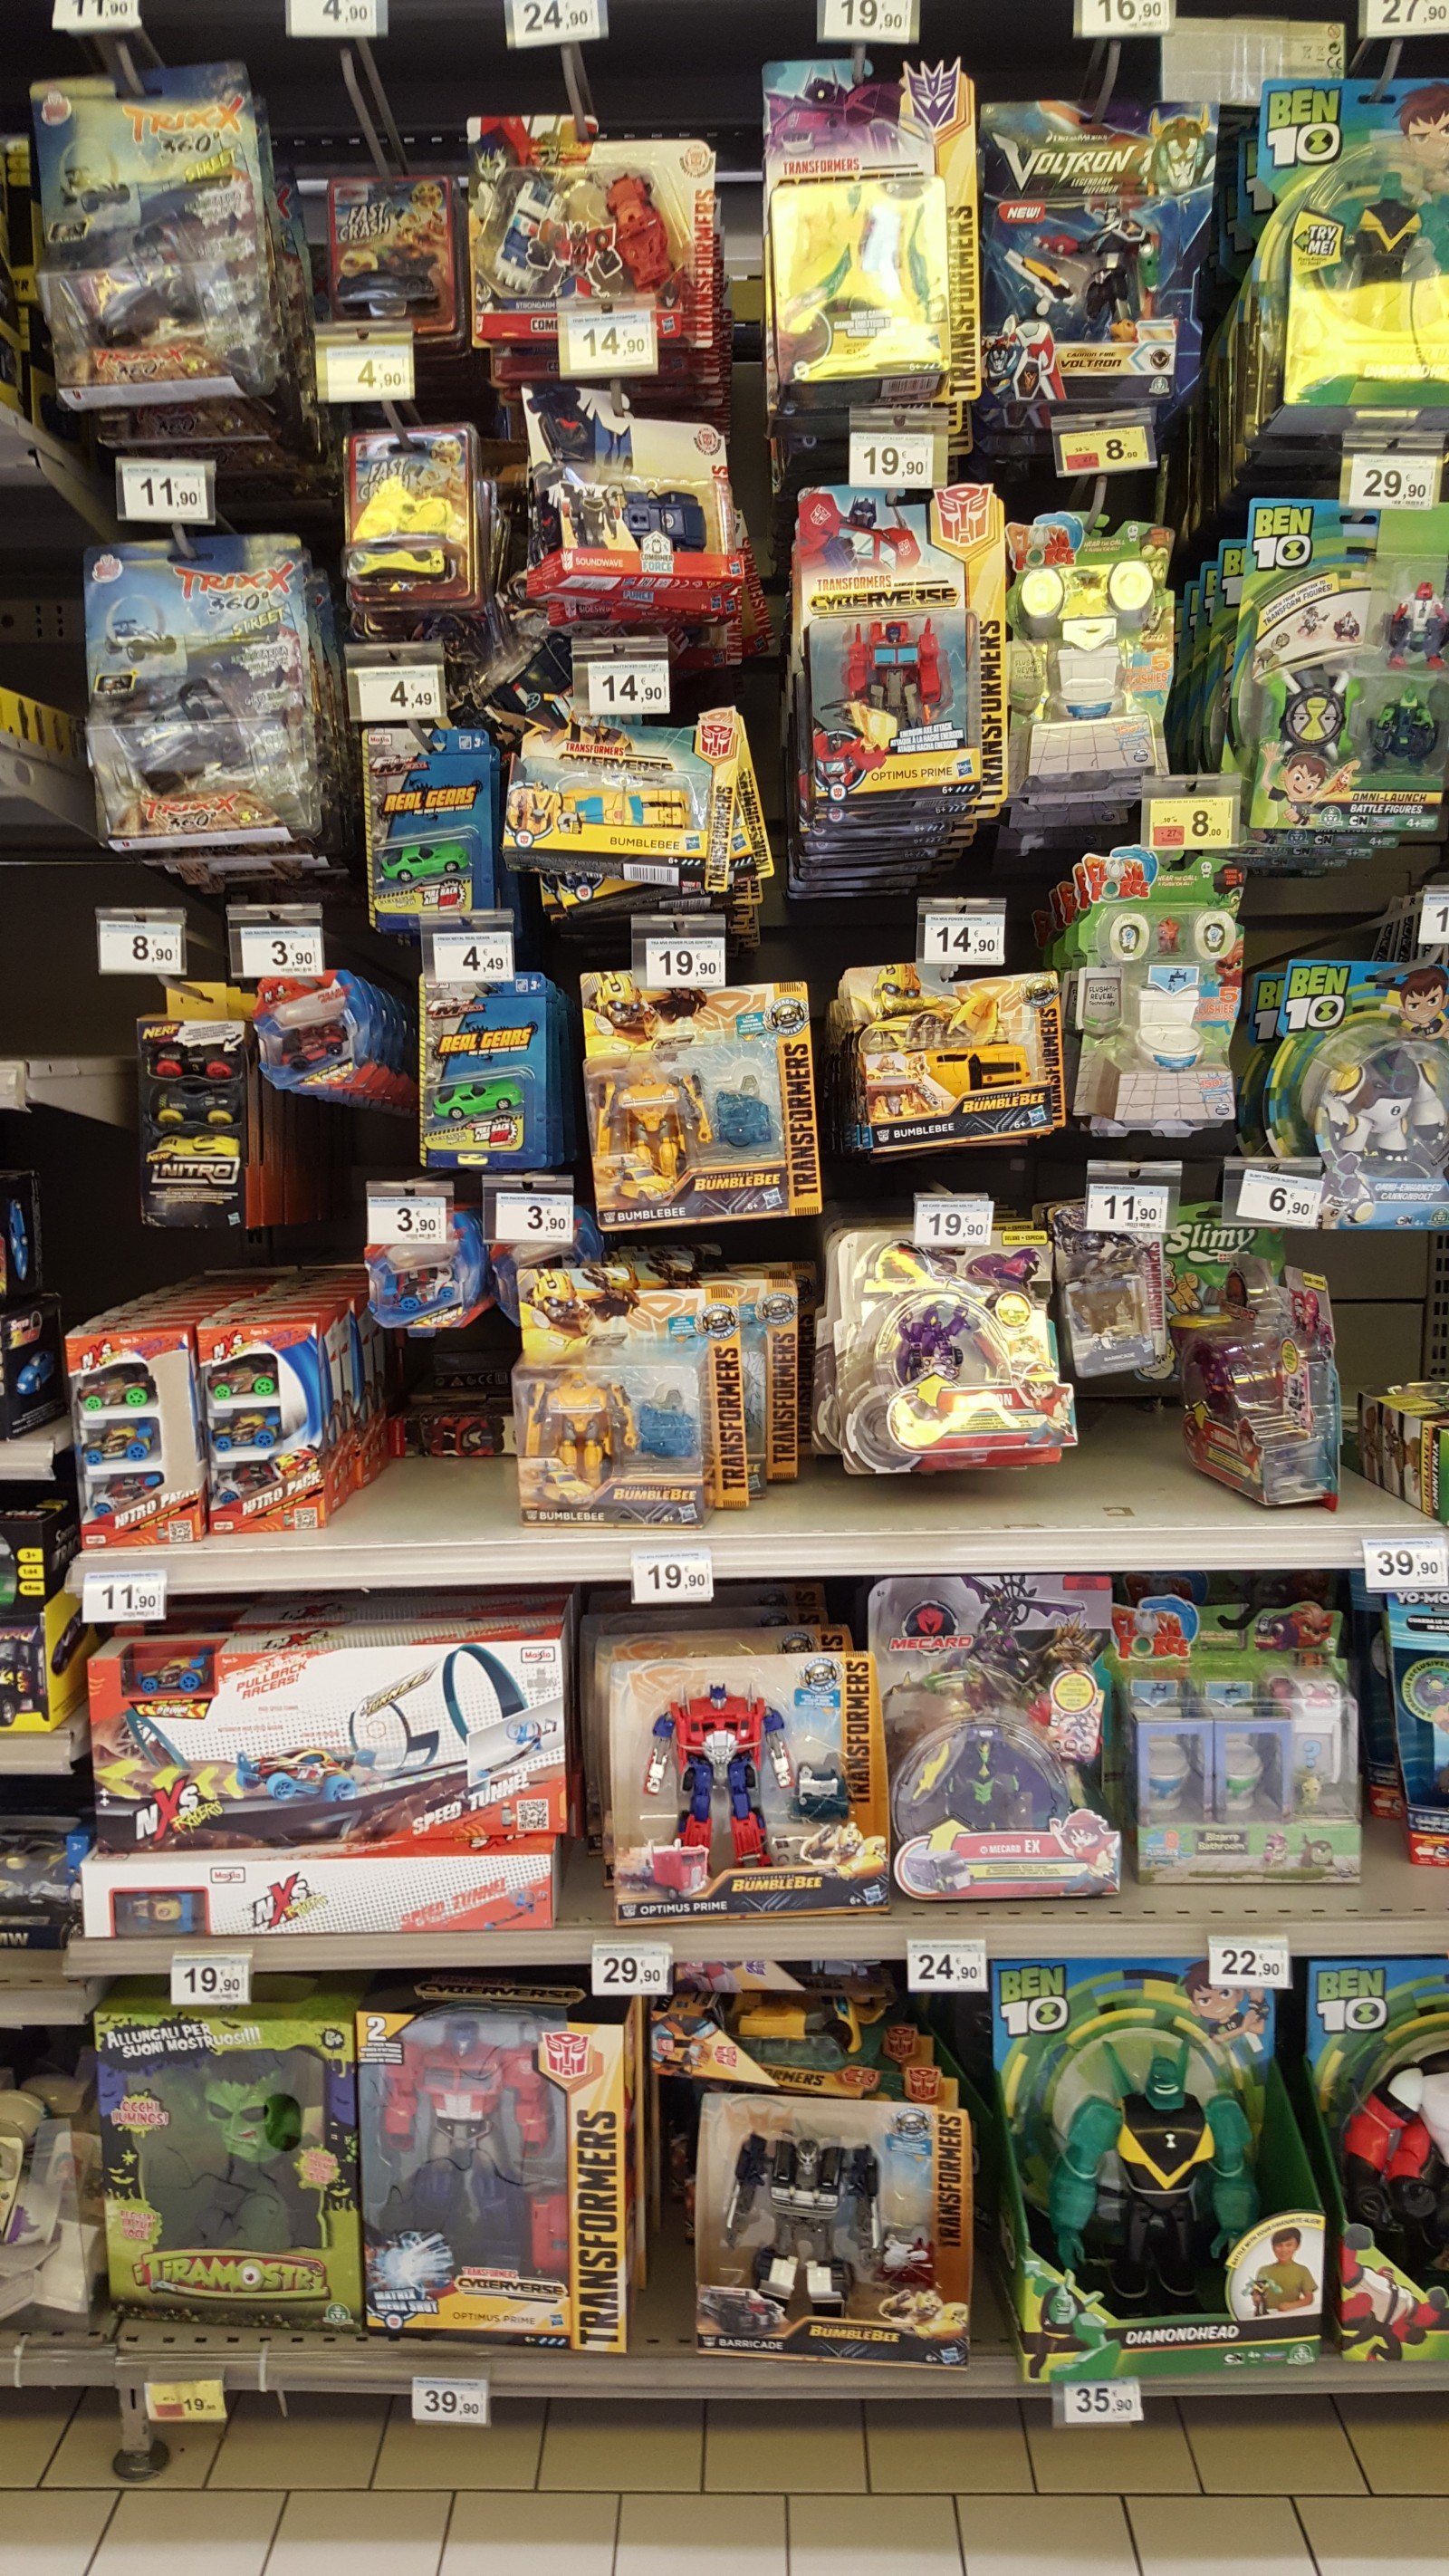 Transformers News: Transformers Bumblebee Movie Toys Sighted in Italy